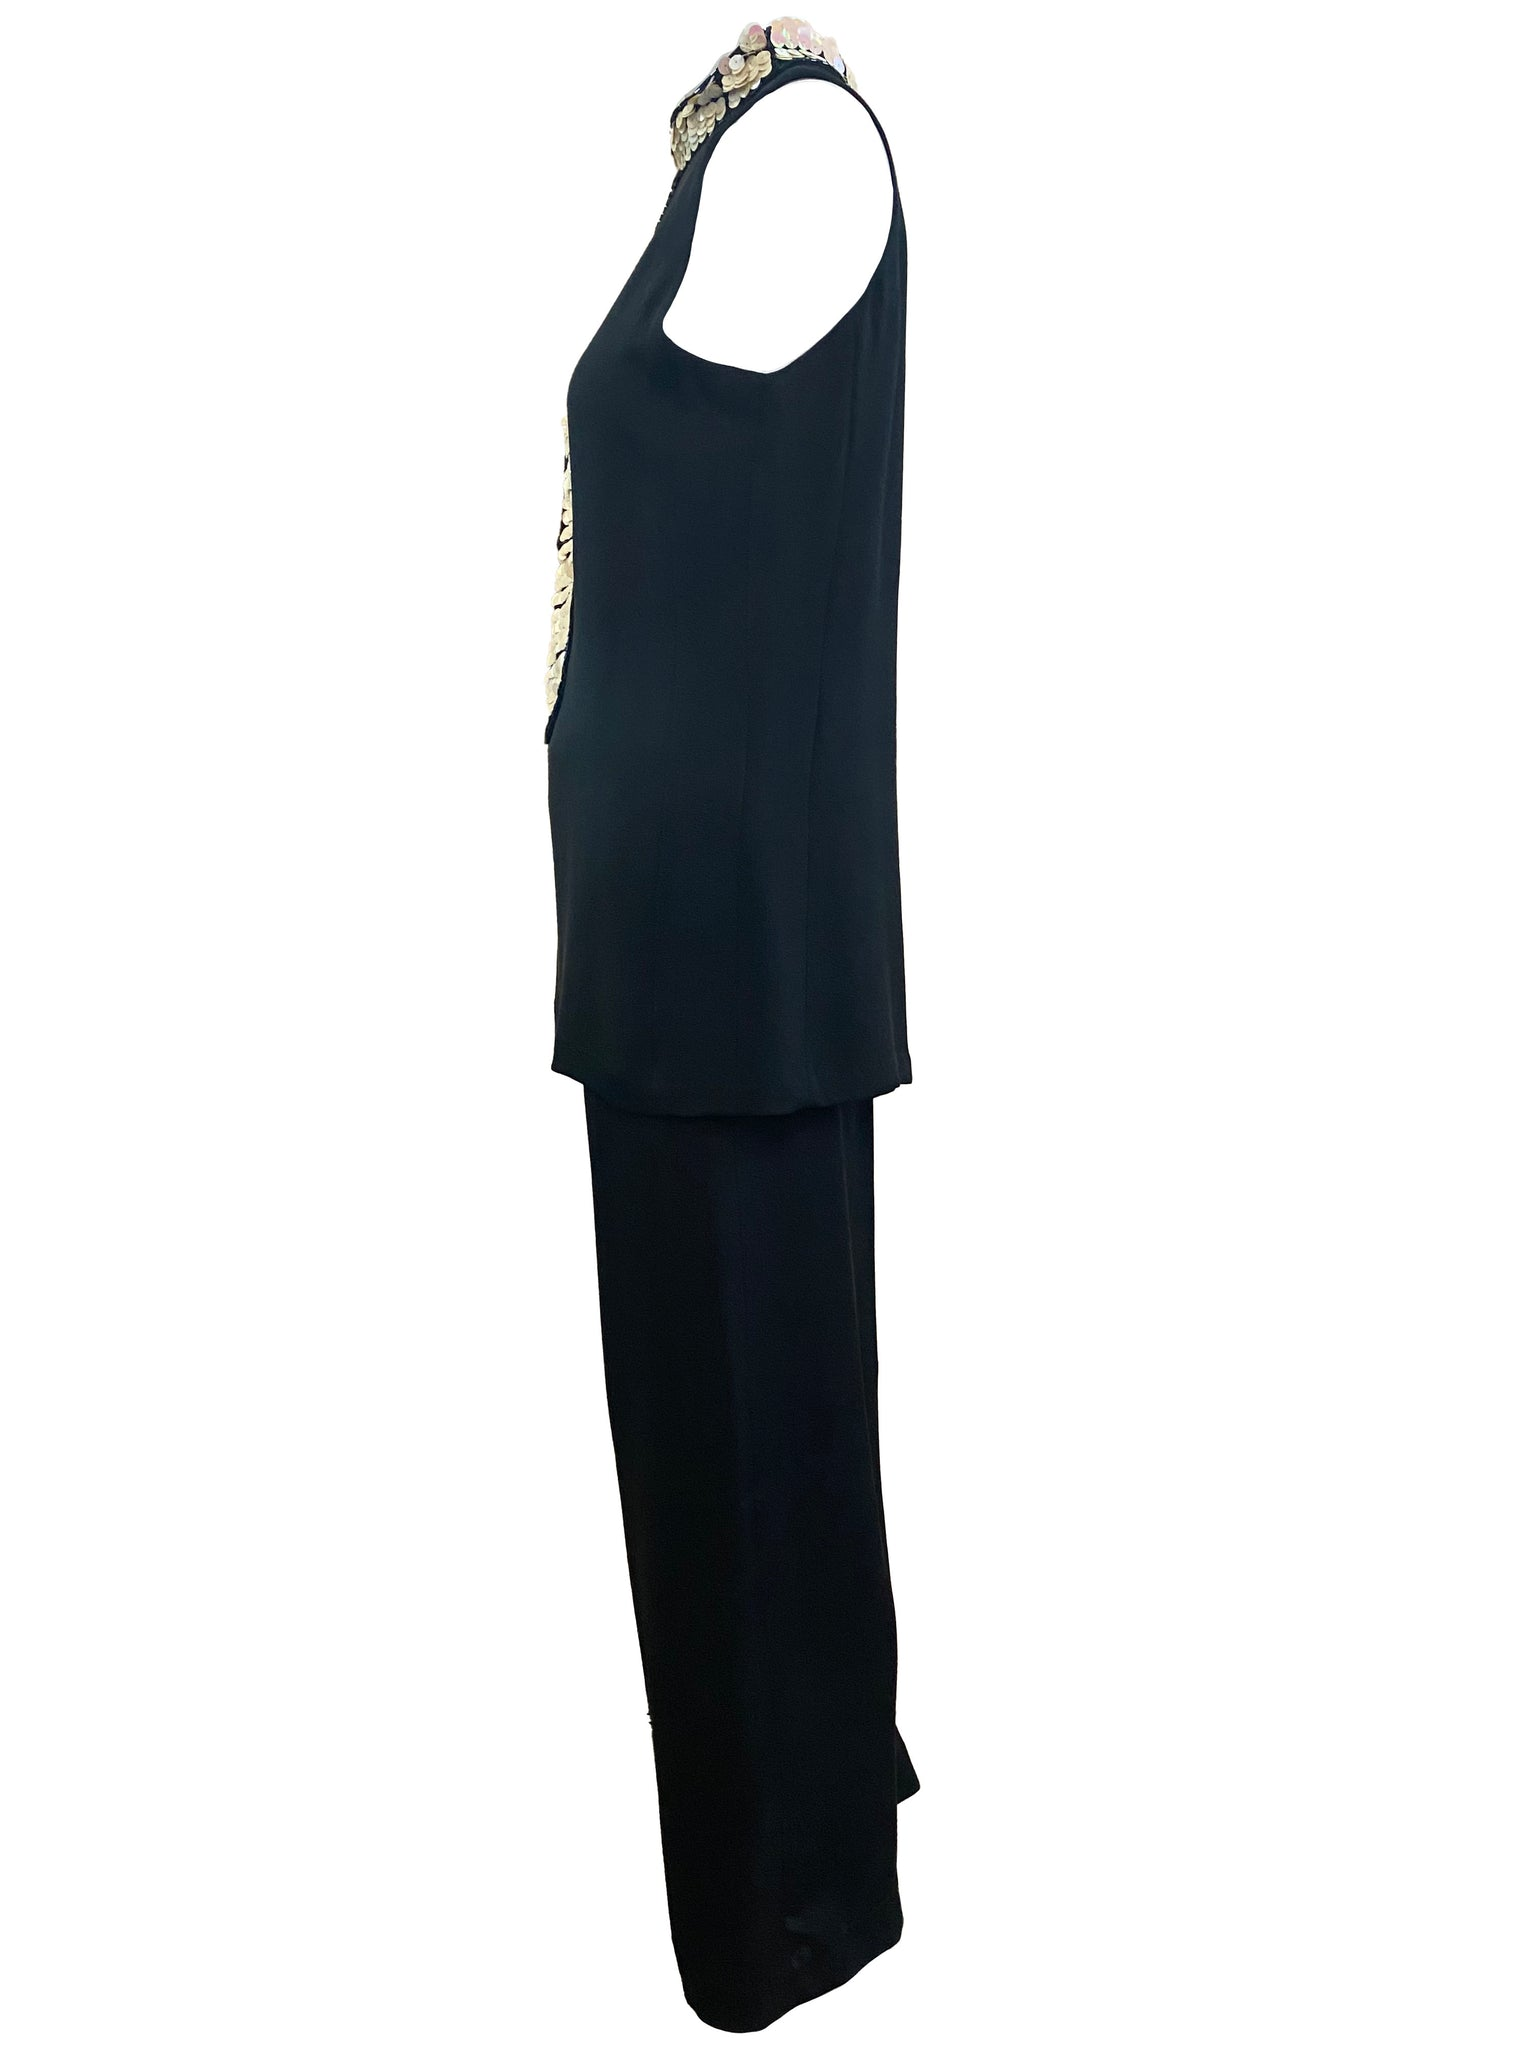 Swinging 60s Black Satin Pantsuit with Sequin Tie SIDE 2 of 5